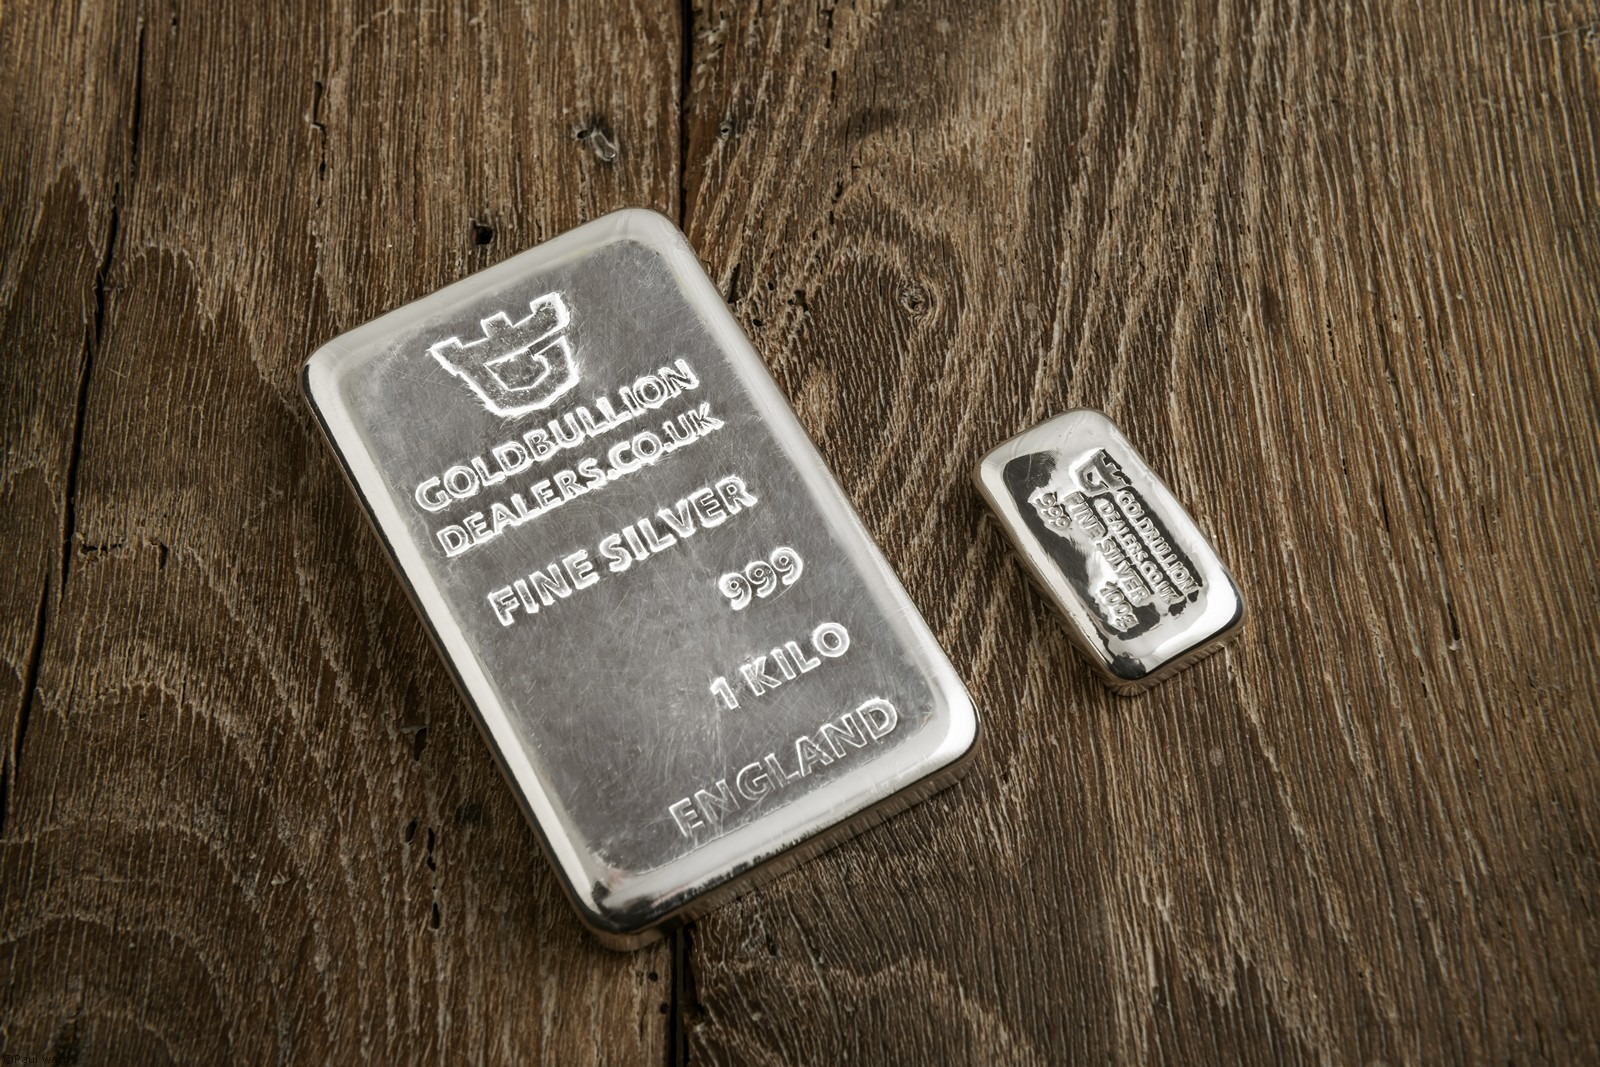 Silver bars product photography by Birmingham Photographer Paul Ward